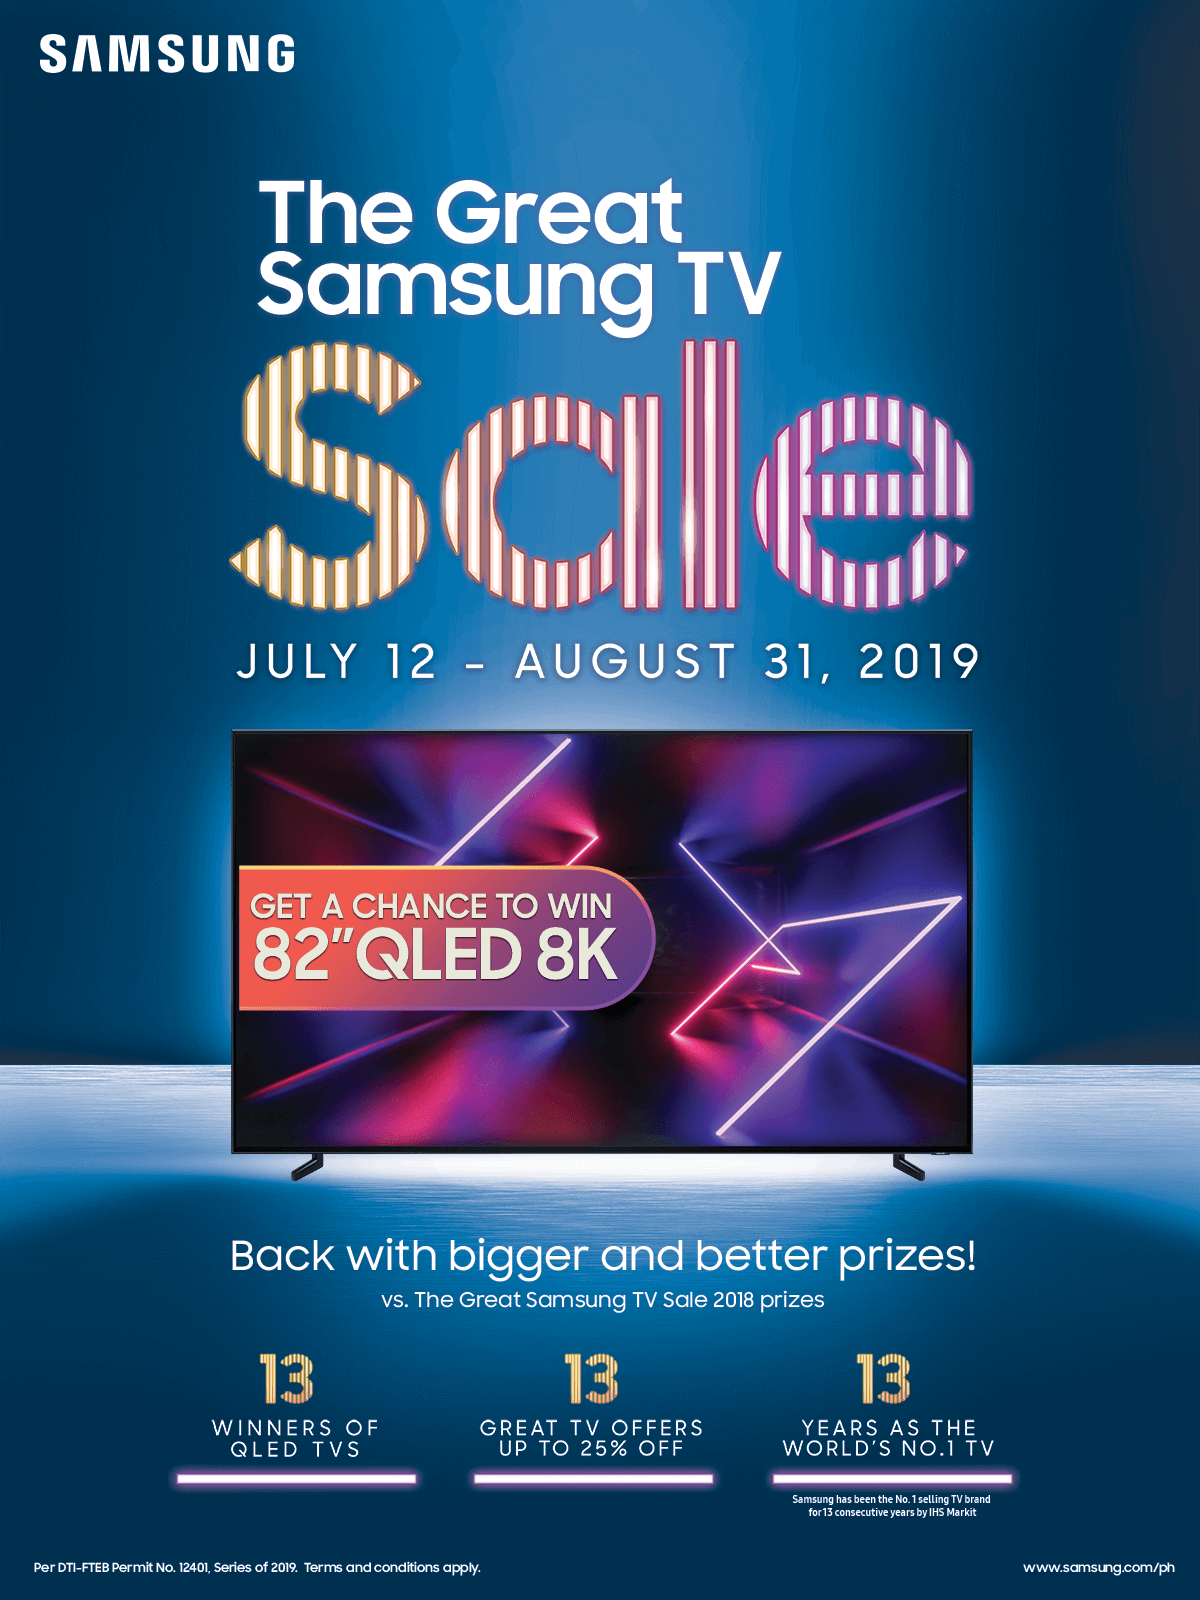 Get a Chance to Win Amazing Prizes at the Great Samsung TV Sale!